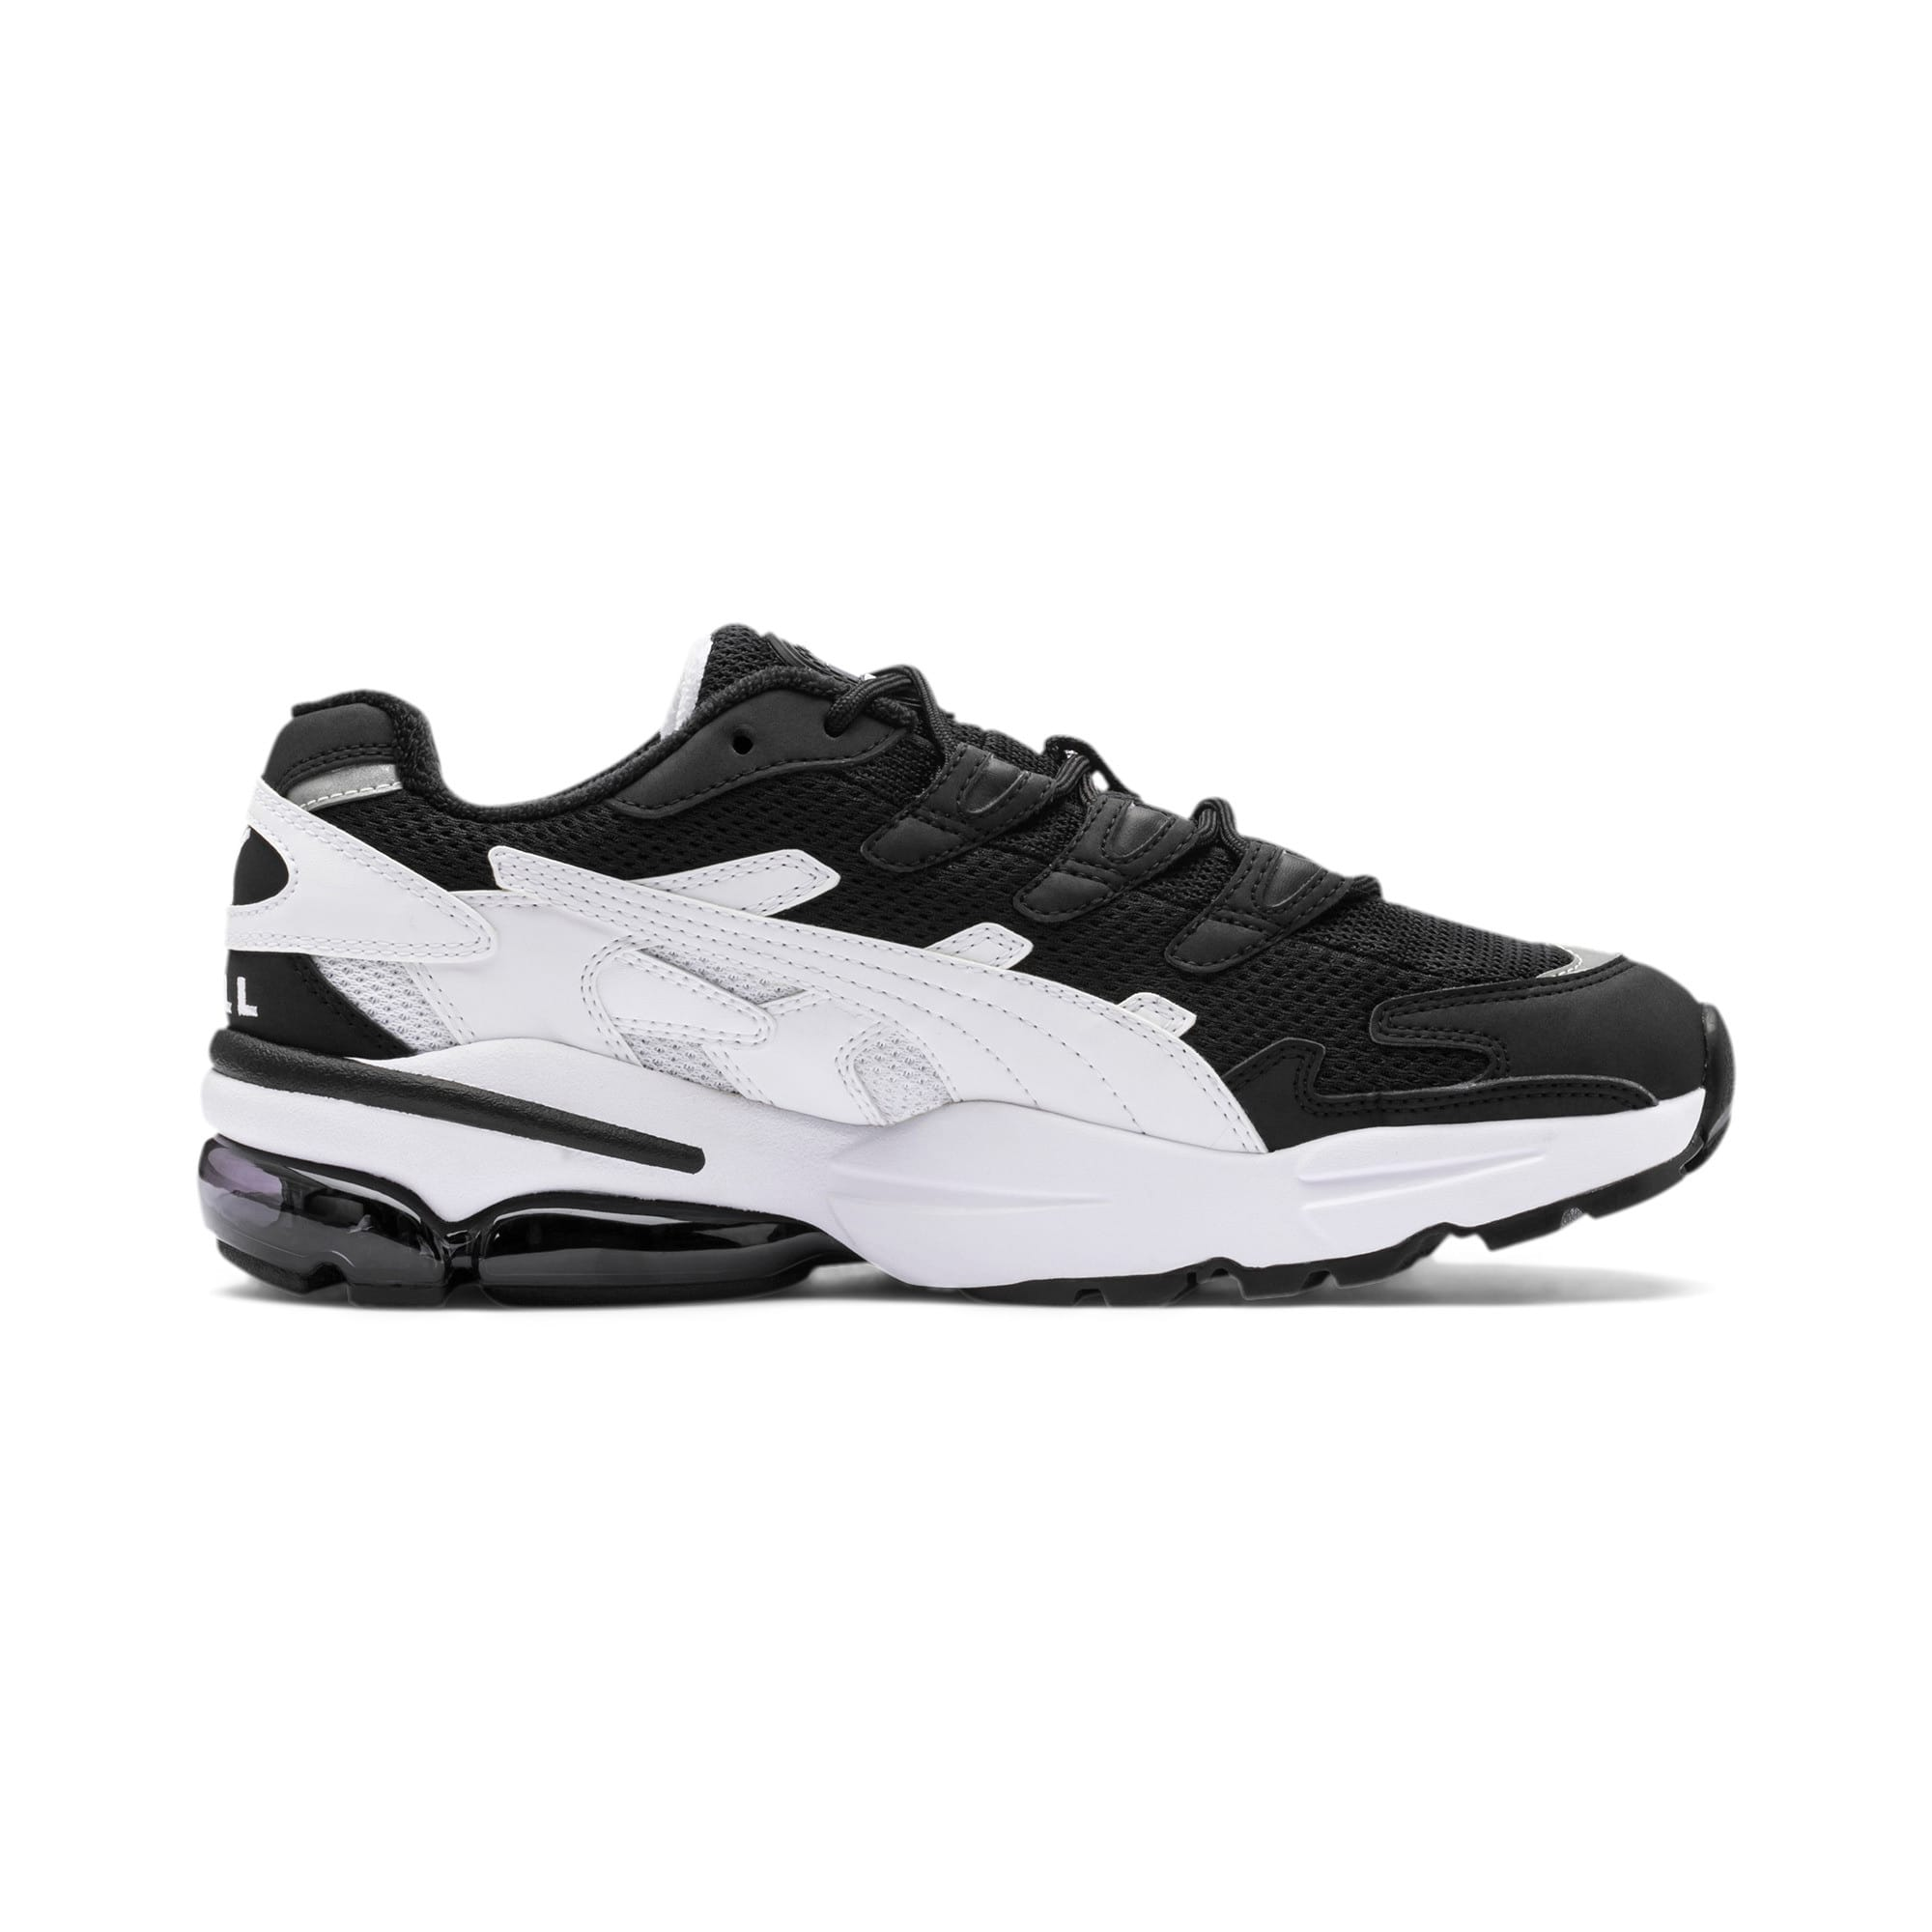 Thumbnail 6 of CELL Alien OG Sneaker, Puma Black-Puma White, medium